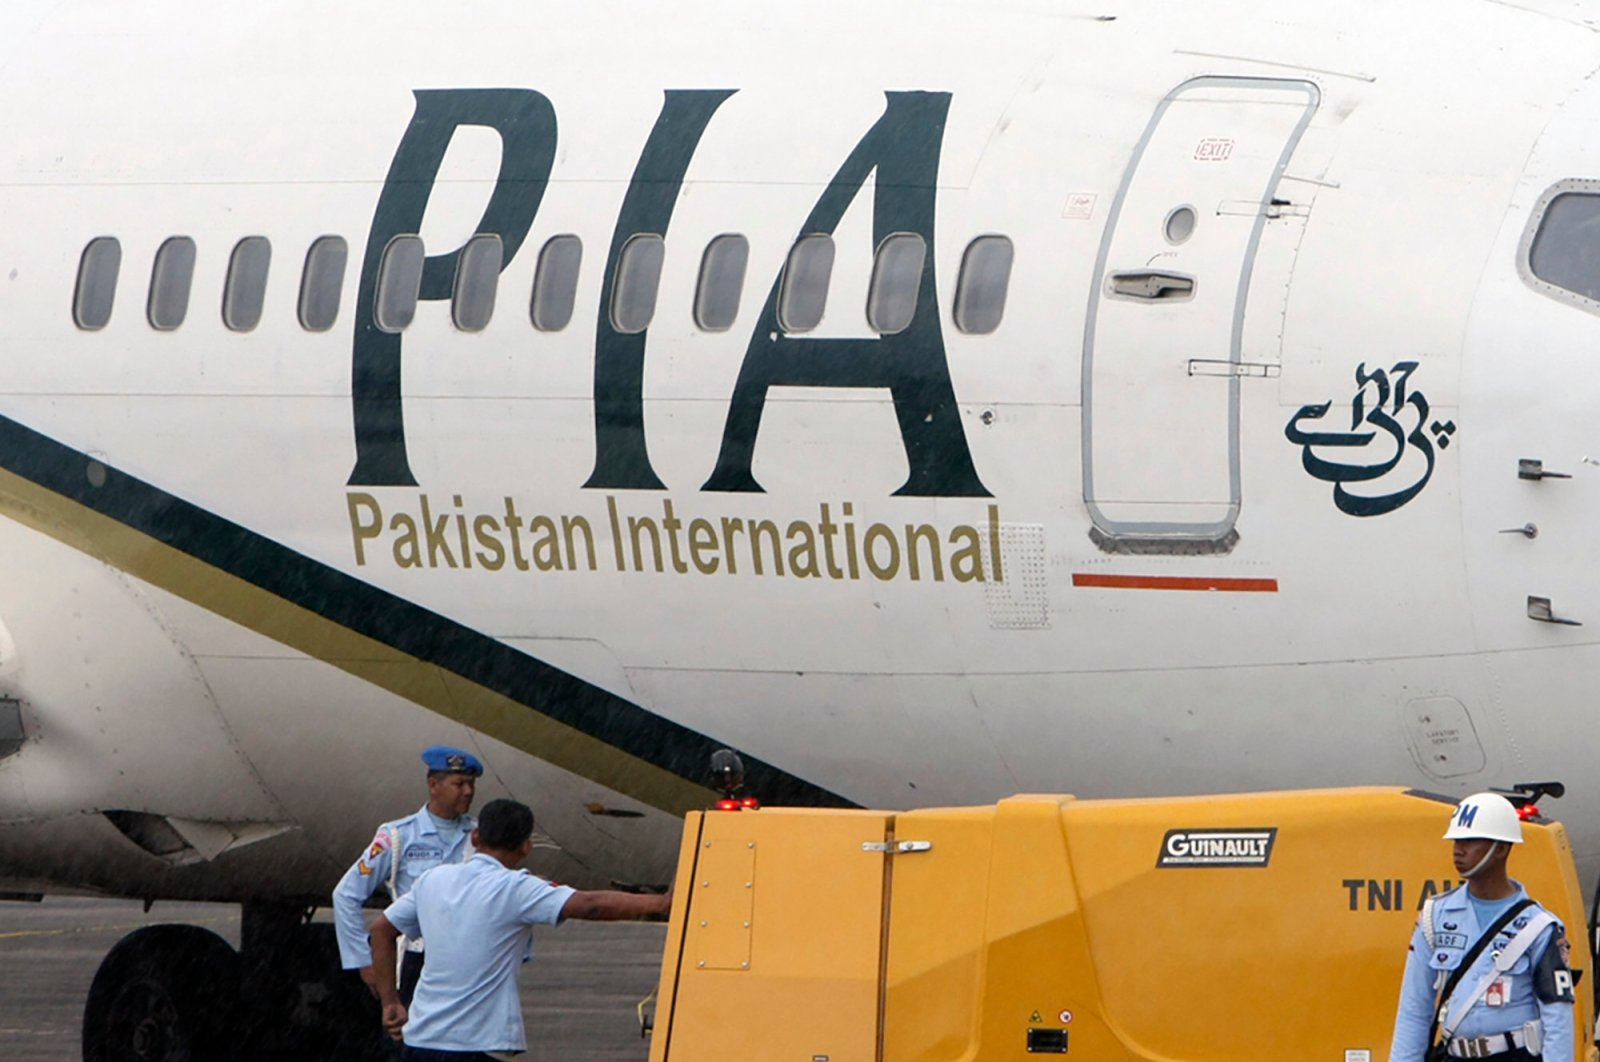 A Pakistan International Airlines passenger jet is parked on the tarmac at a military base in Makassar, Indonesia, March 7, 2011. (AP Photo)